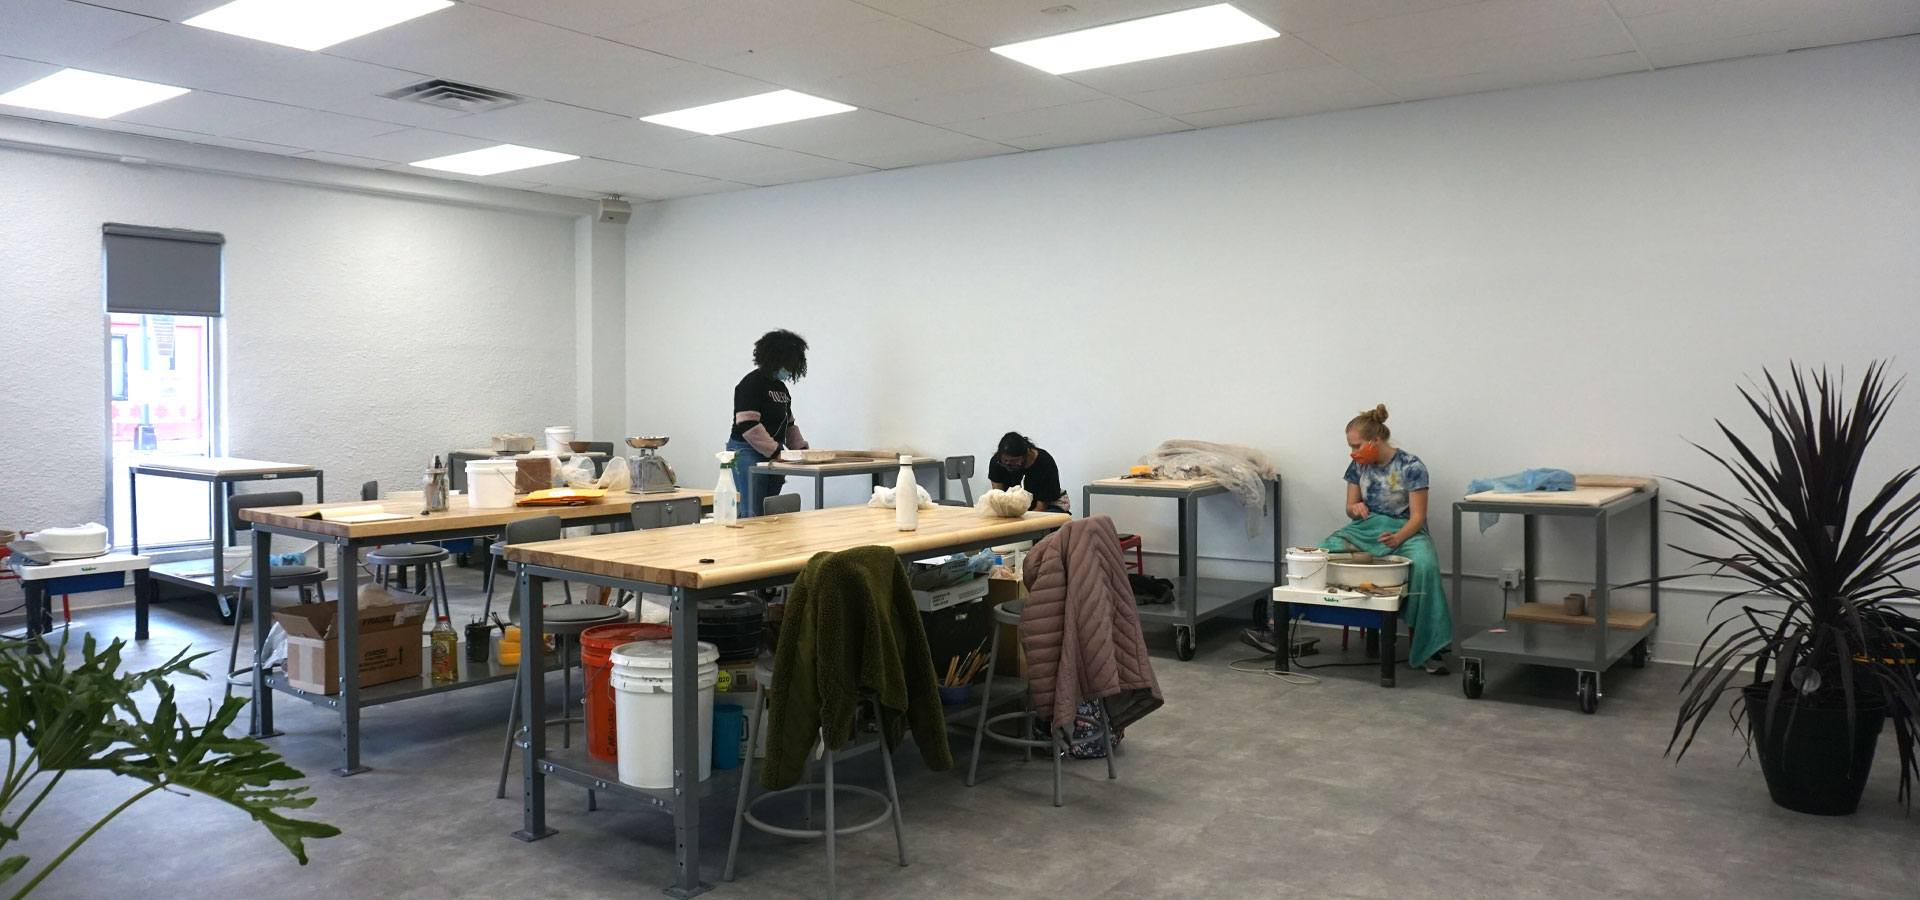 The new 1108 ceramics studio being used by JXTA apprentices.